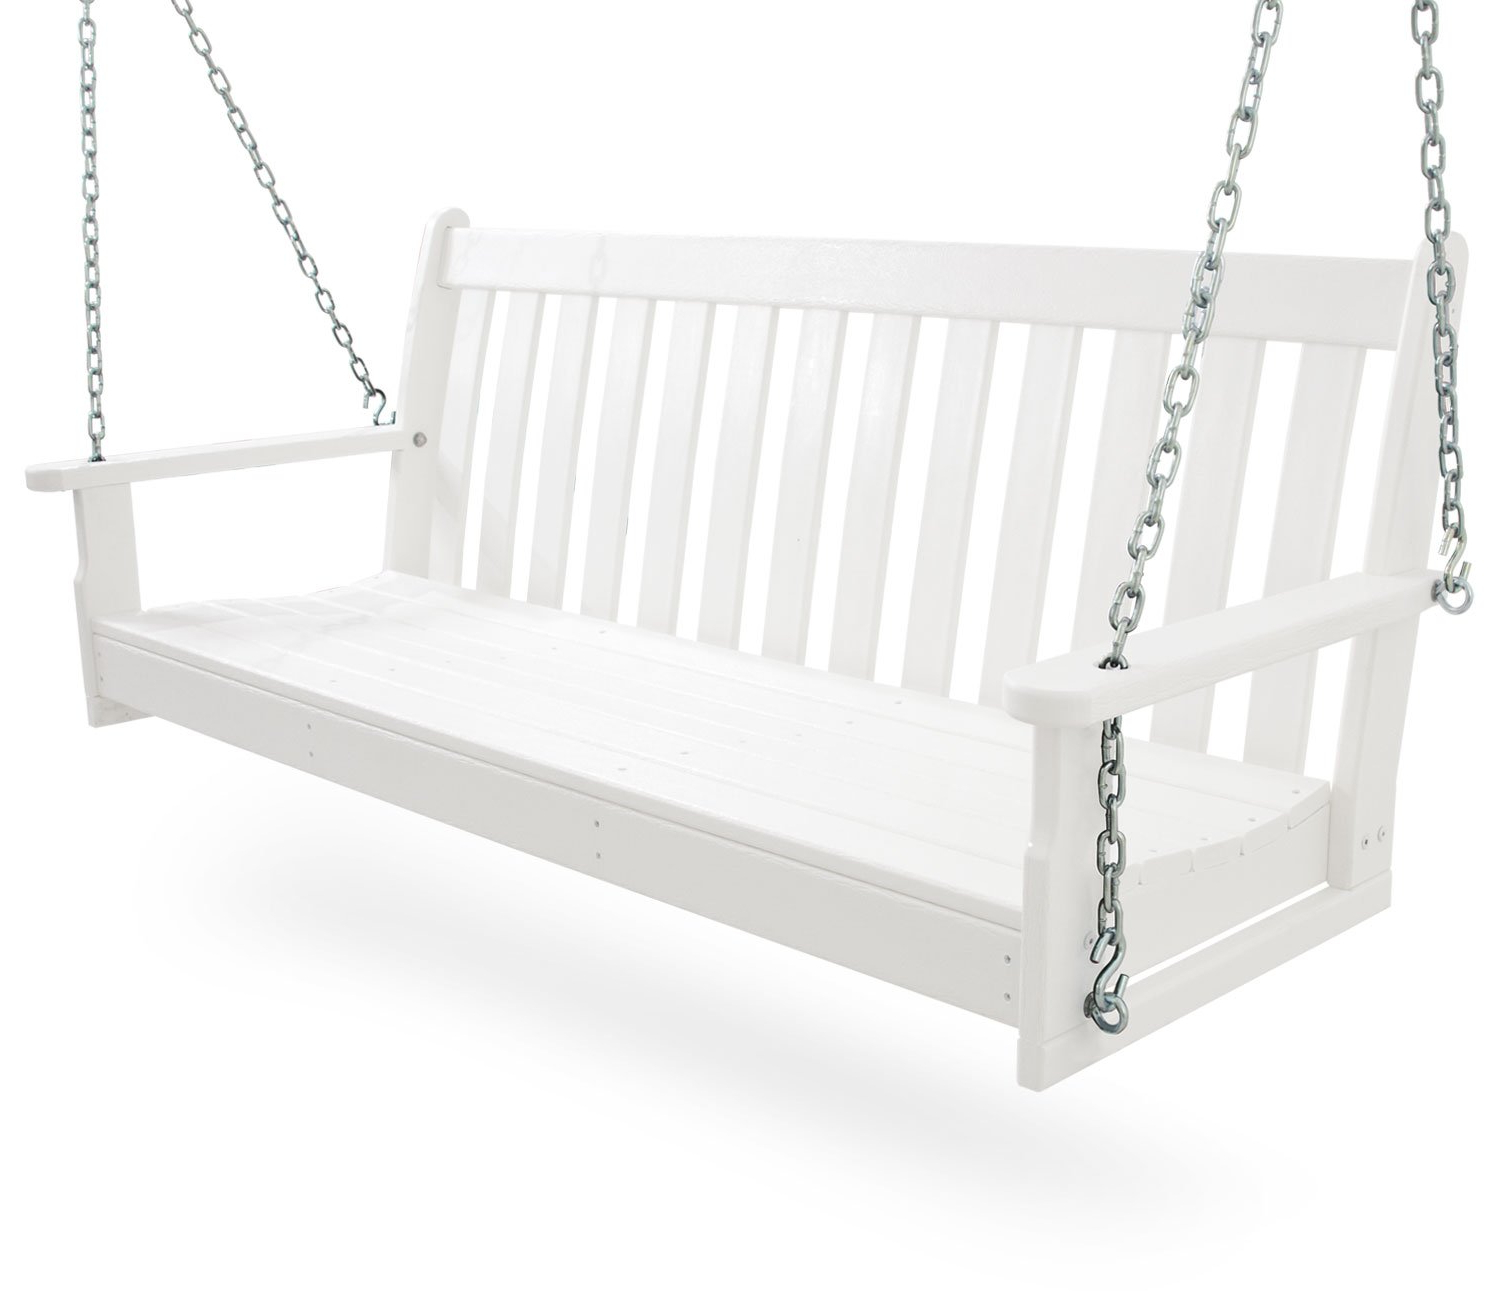 Popular Vineyard Porch Swings For Polywood Gns60bl Vineyard 60 Swing Black Patio, Lawn (View 20 of 30)